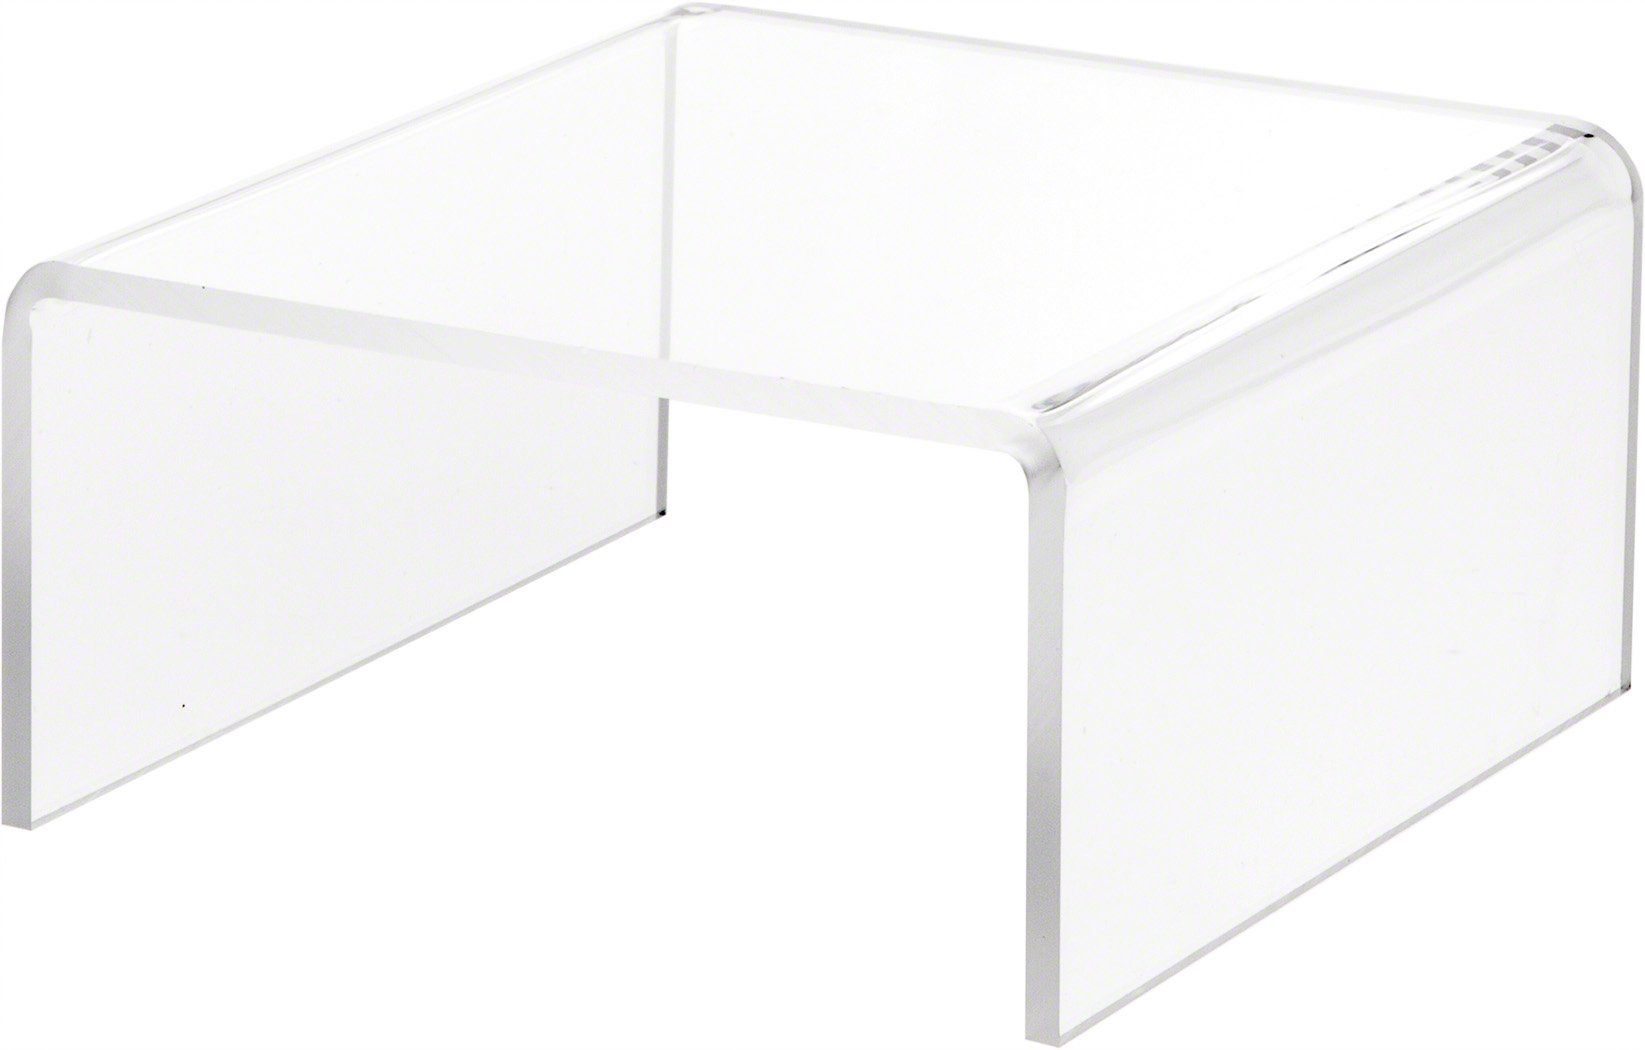 Plymor Brand Clear Acrylic Short Square Riser, 3.5'' H x 7'' W x 7'' D (1/4'' thick)